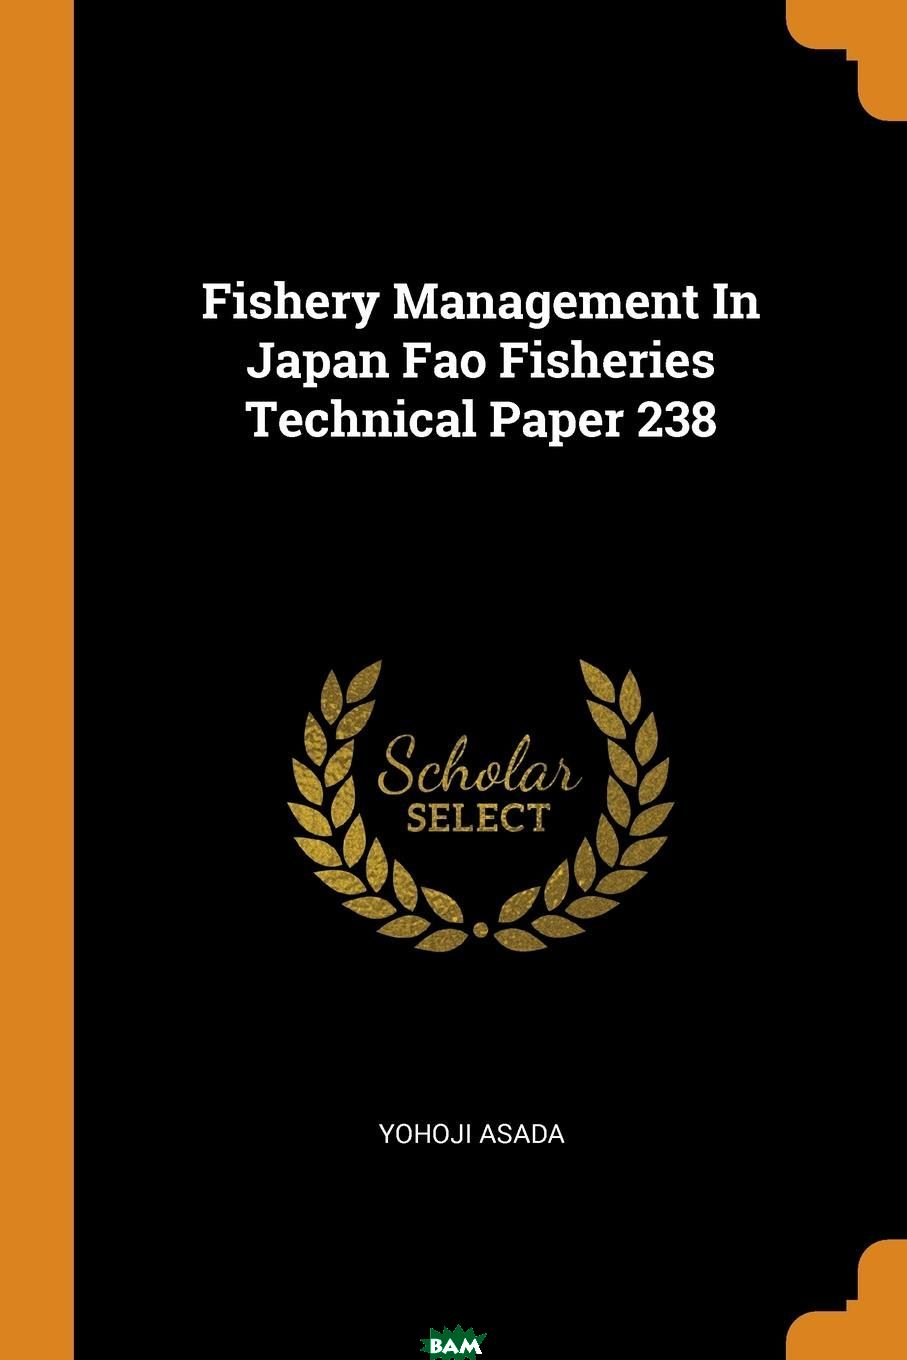 Fishery Management In Japan Fao Fisheries Technical Paper 238